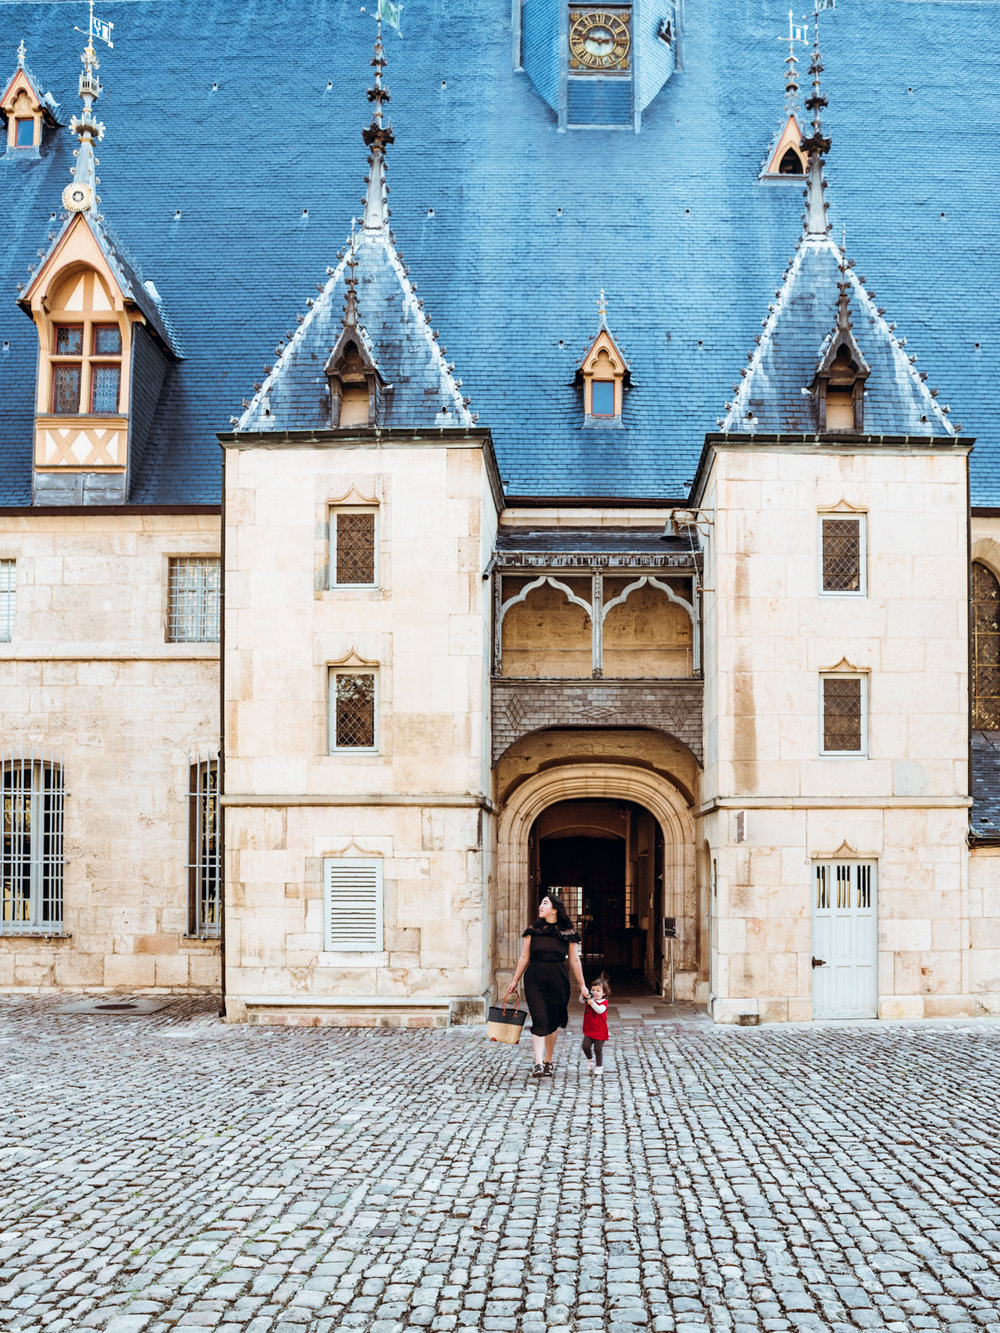 Walking into the hospices in Beaune, France.